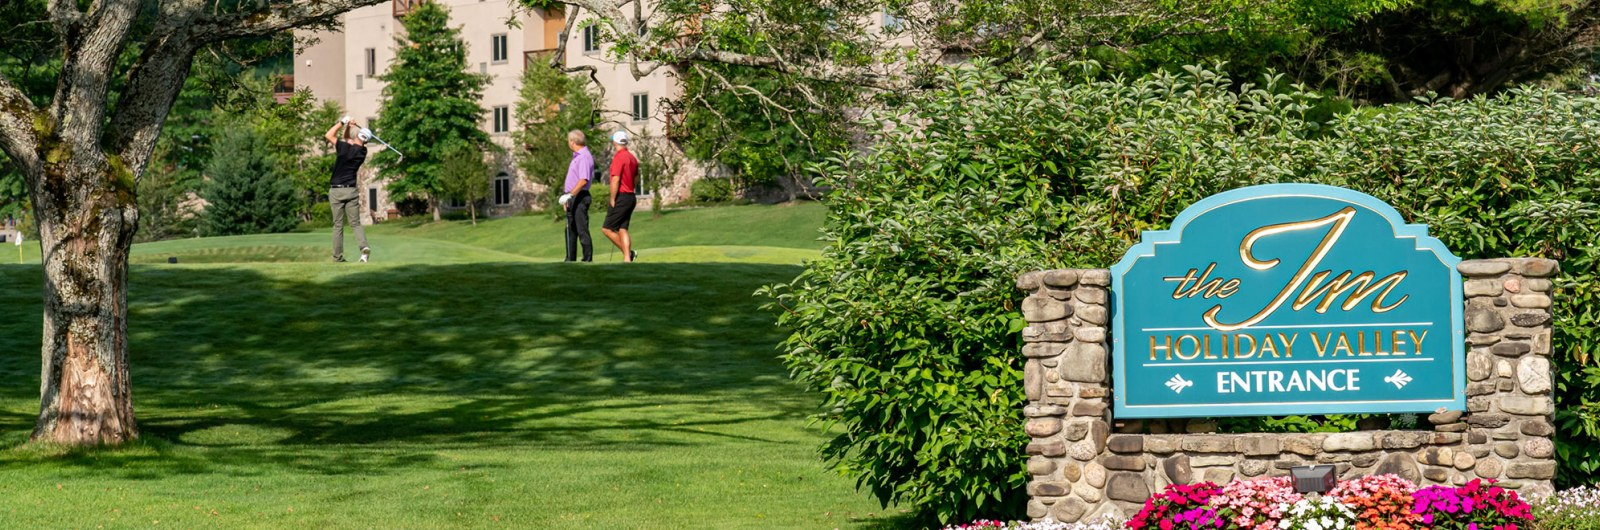 Golfers teeing off on hole next to the Inn at Holiday Valley